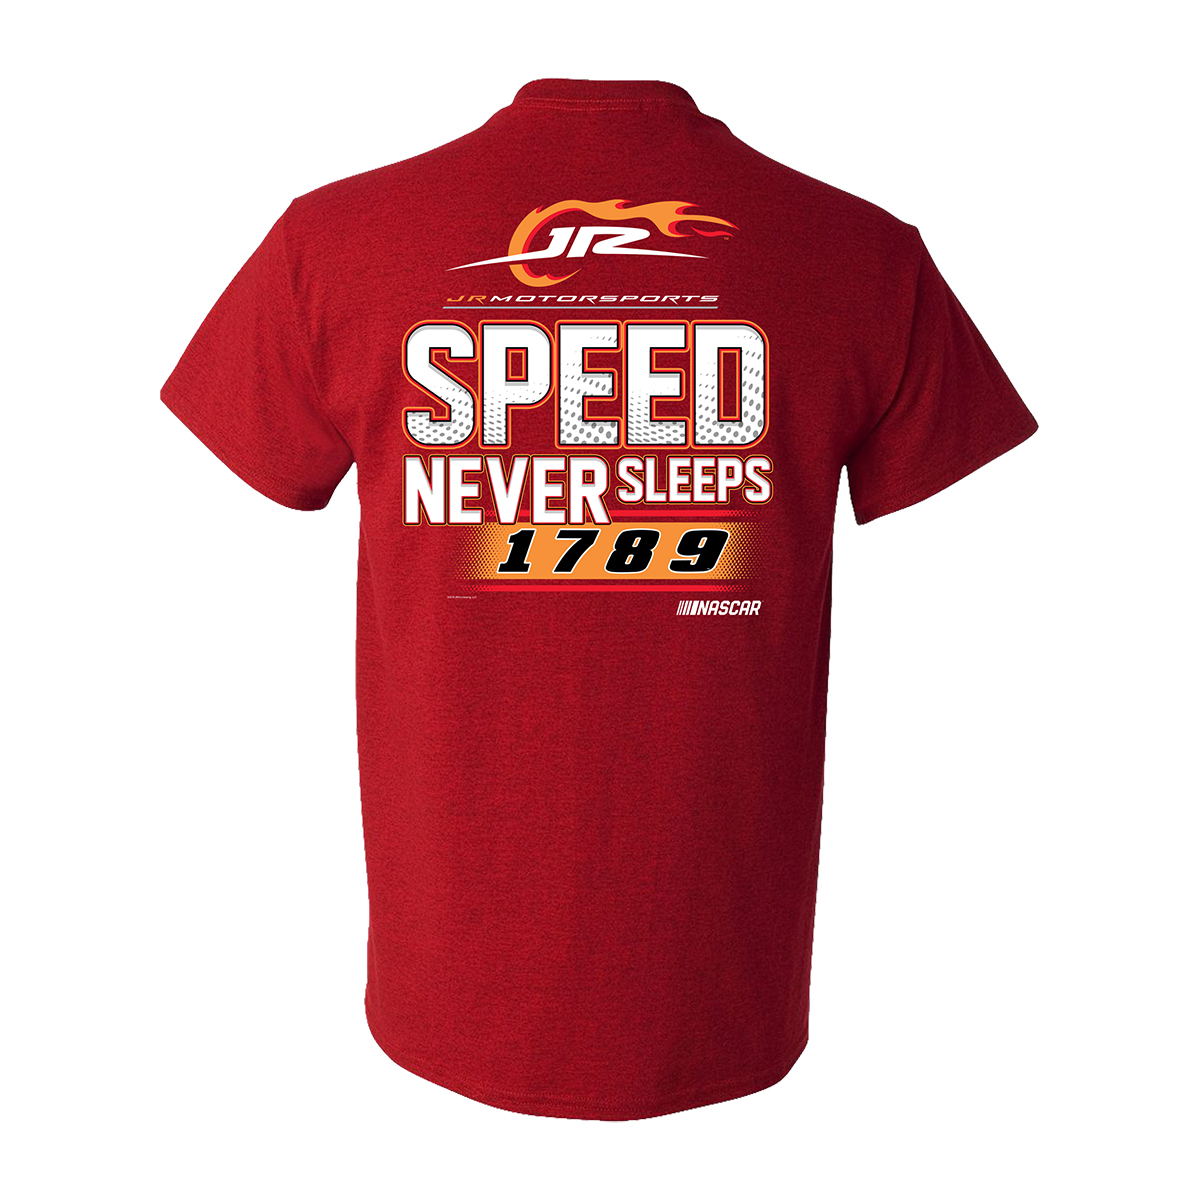 2019 NASCAR Jr. Motorsports Speed Never Sleeps Red T-shirt